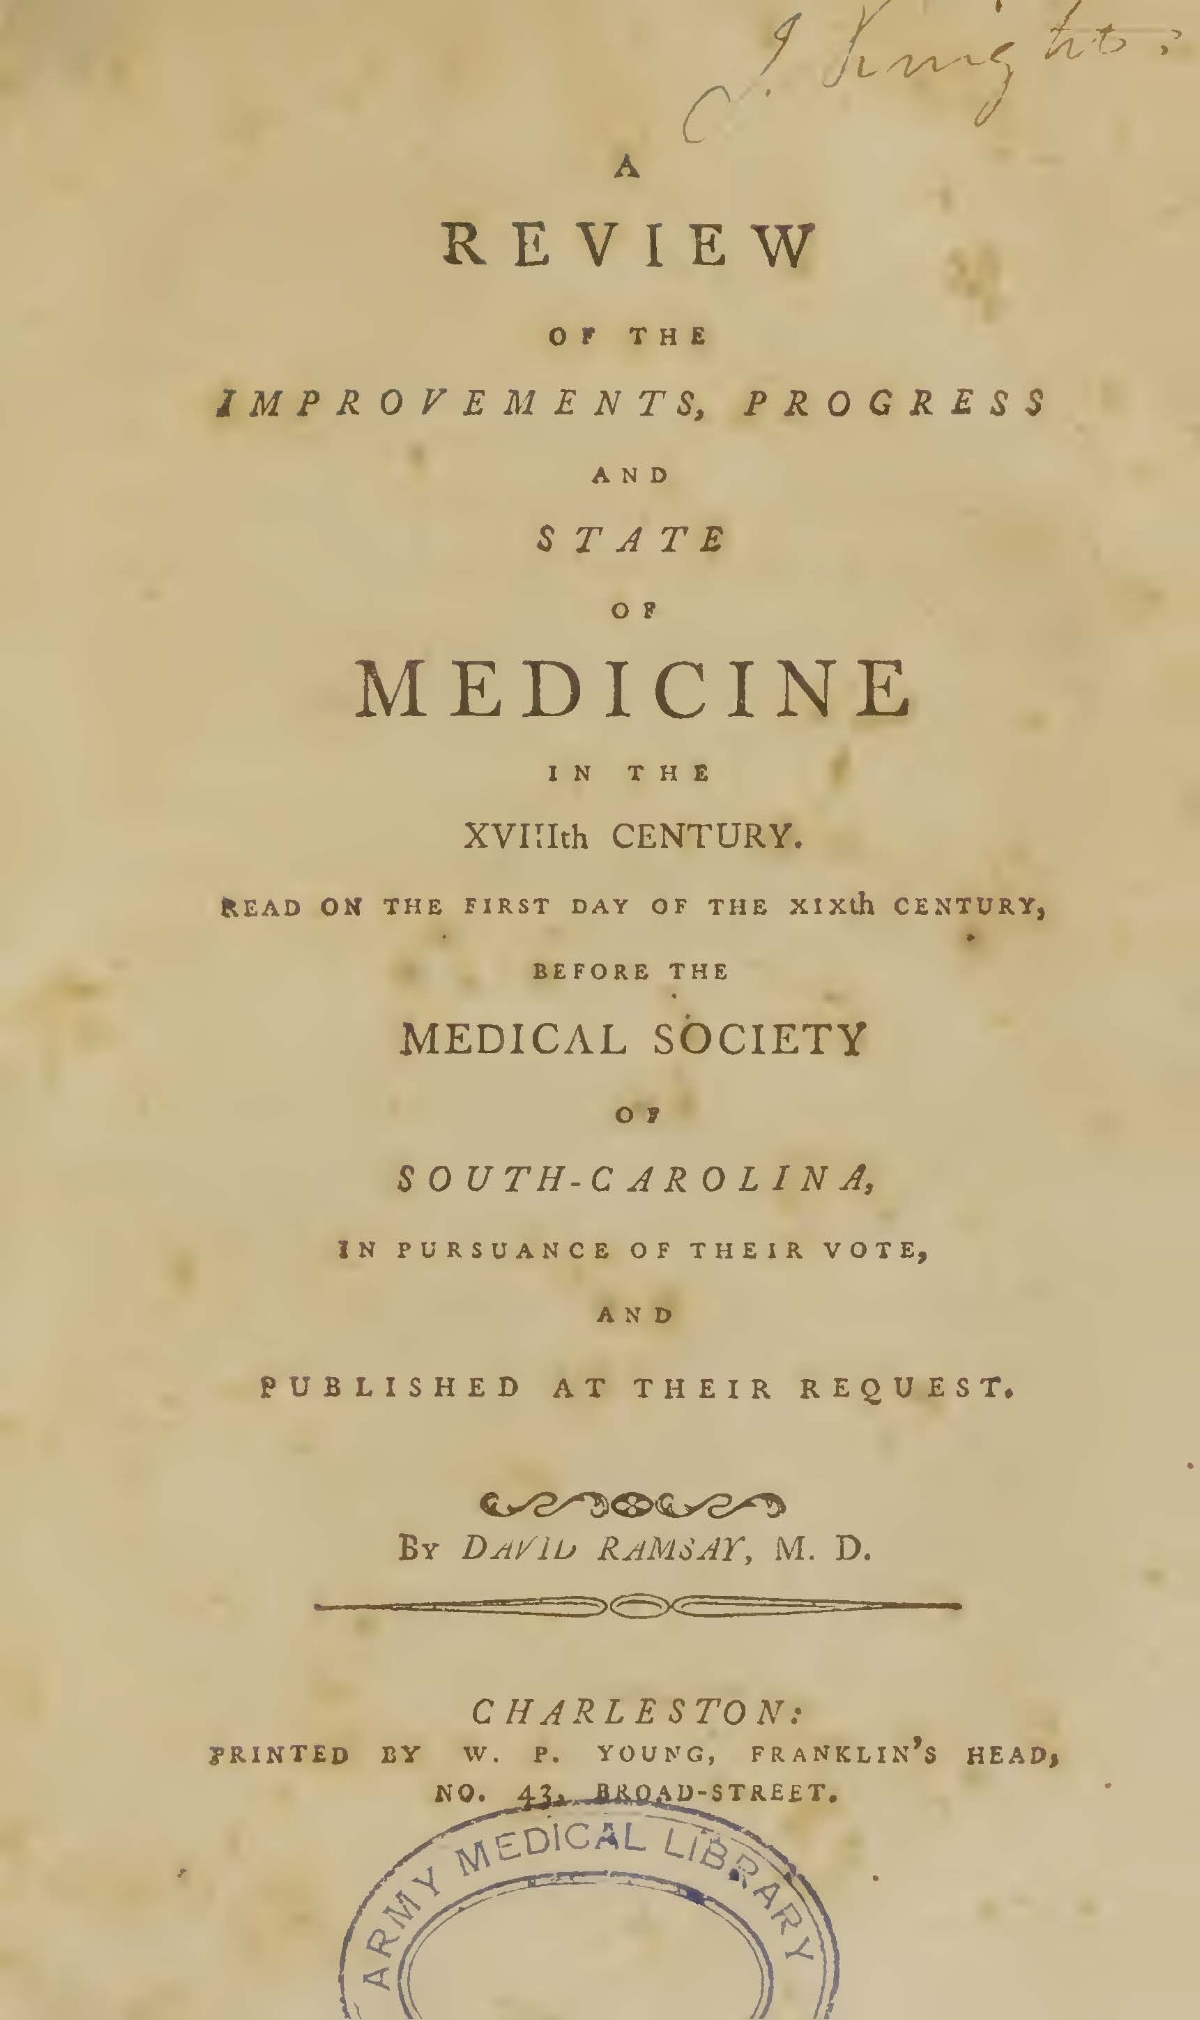 Ramsay, David, A Review of the Improvements of Medicine in the XVIIIth Century Title Page.jpg